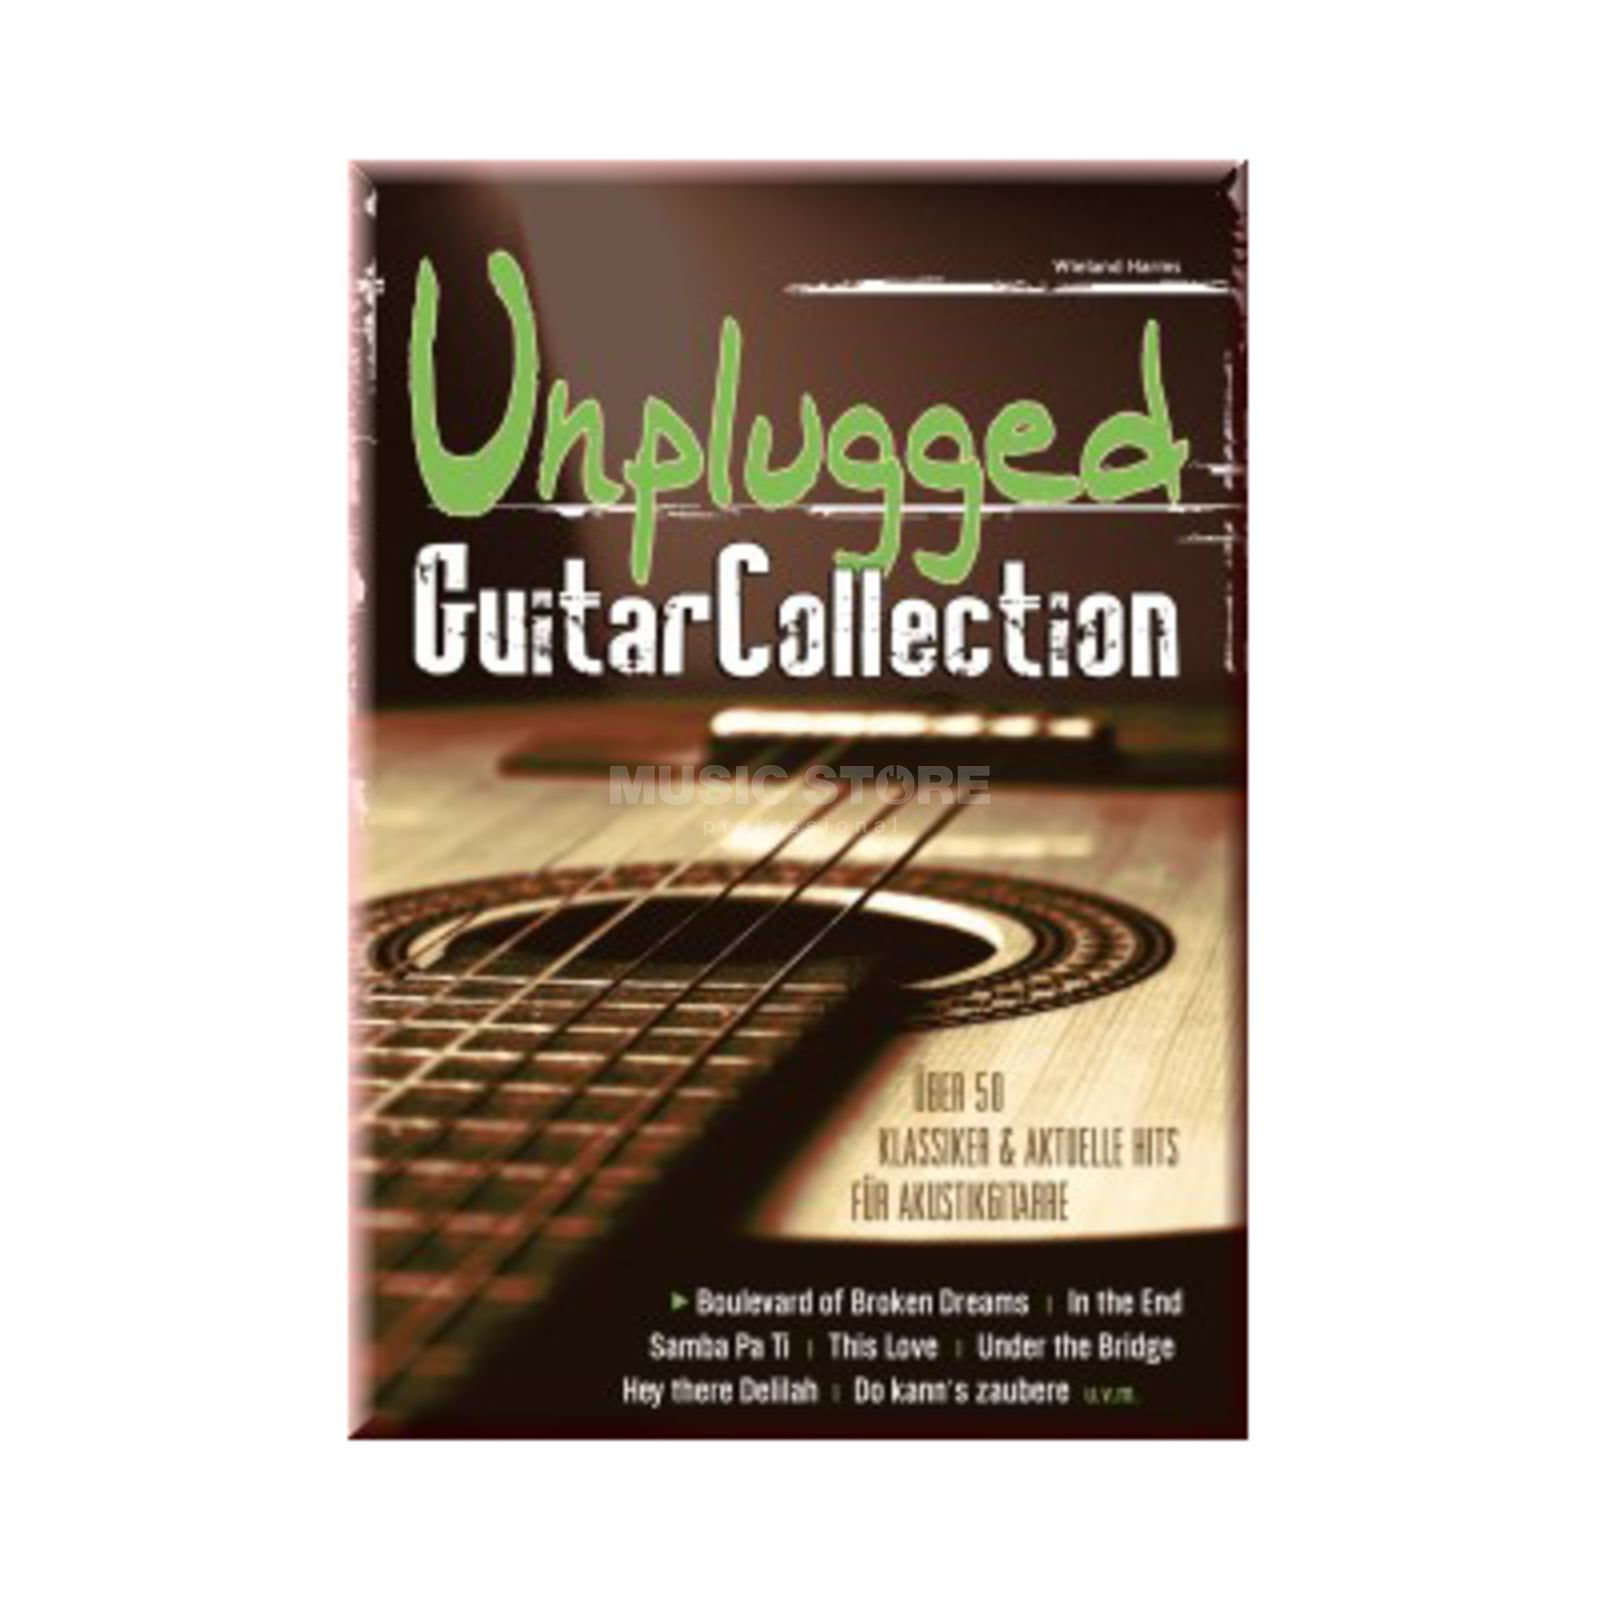 Gerig-Verlag Unplugged Guitar Collection Wieland Harms - Gitarre Produktbild